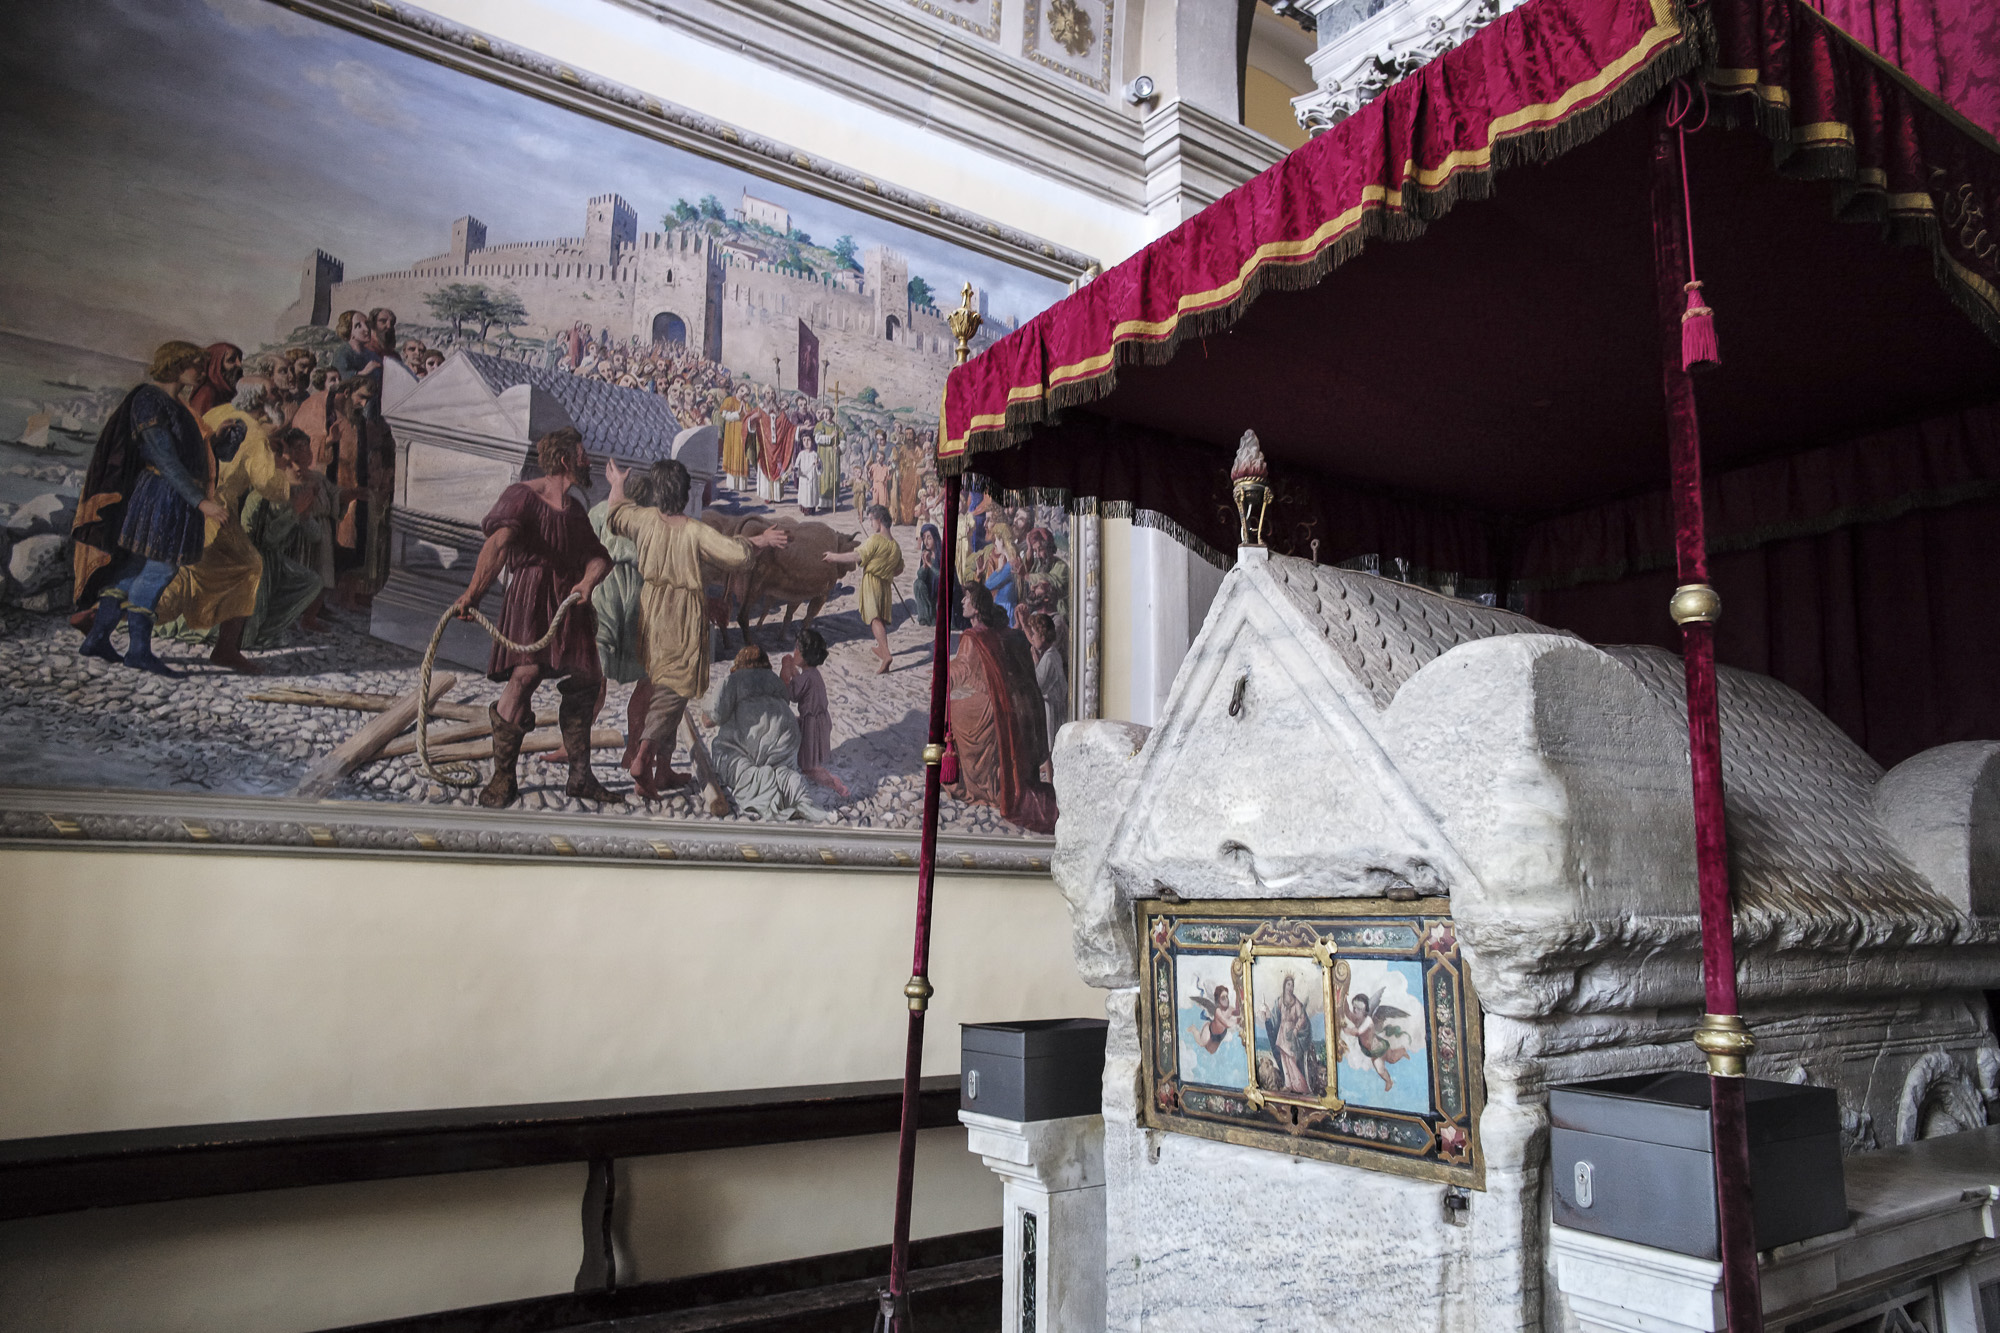 The Sarcophagus of St. Euphemia with a painting depicting her legend